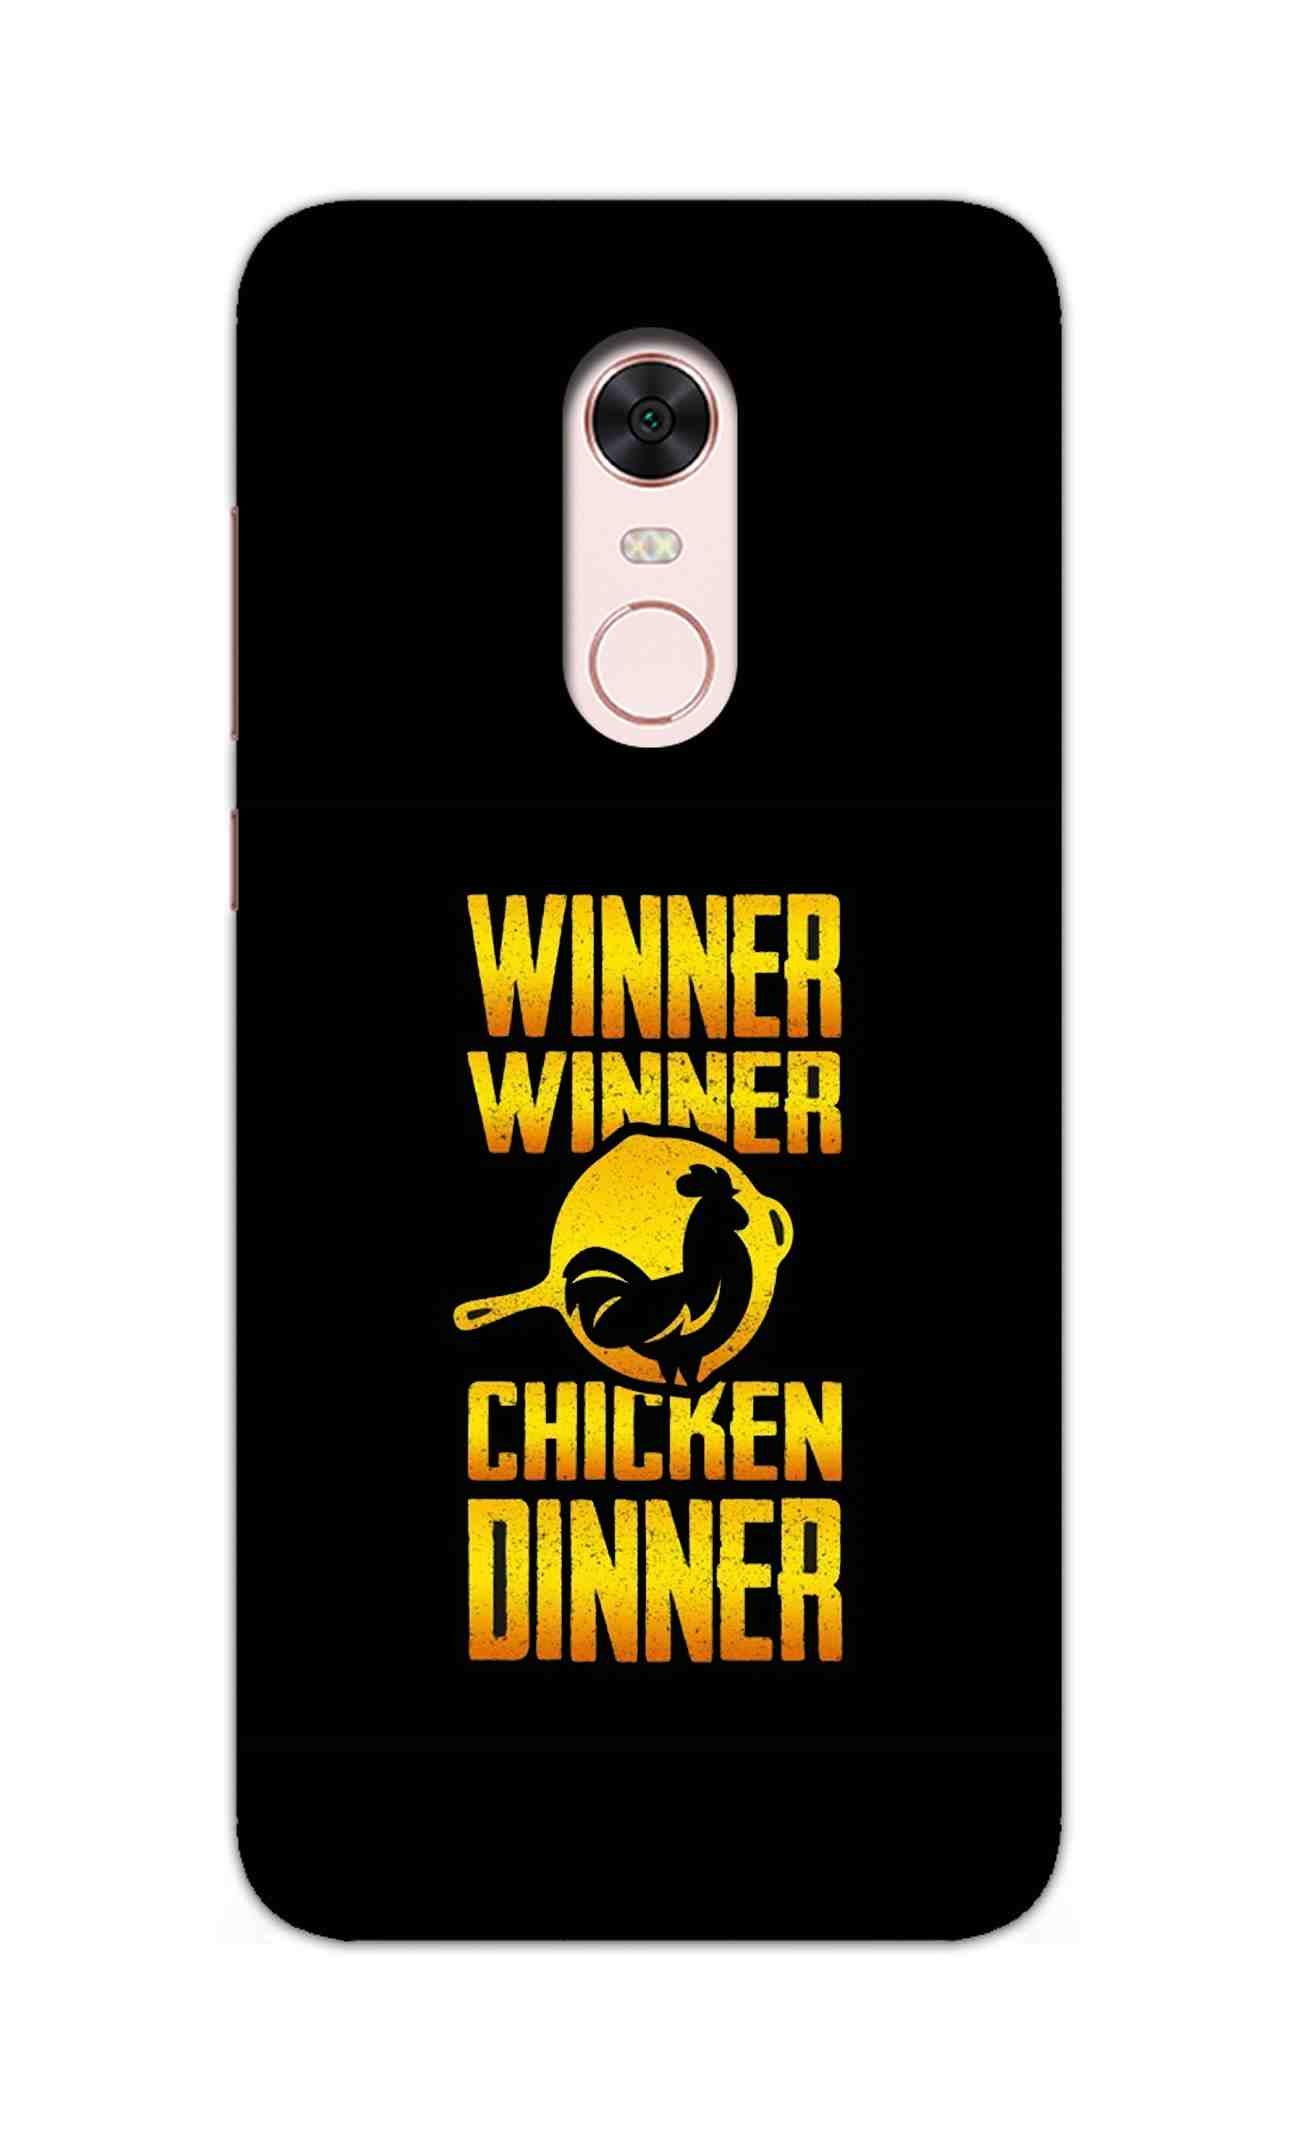 Chicken Dinner Pan For Winner Typography RedMi Note 5 / RedMi Note 5 Plus Mobile Cover Case - MADANYU